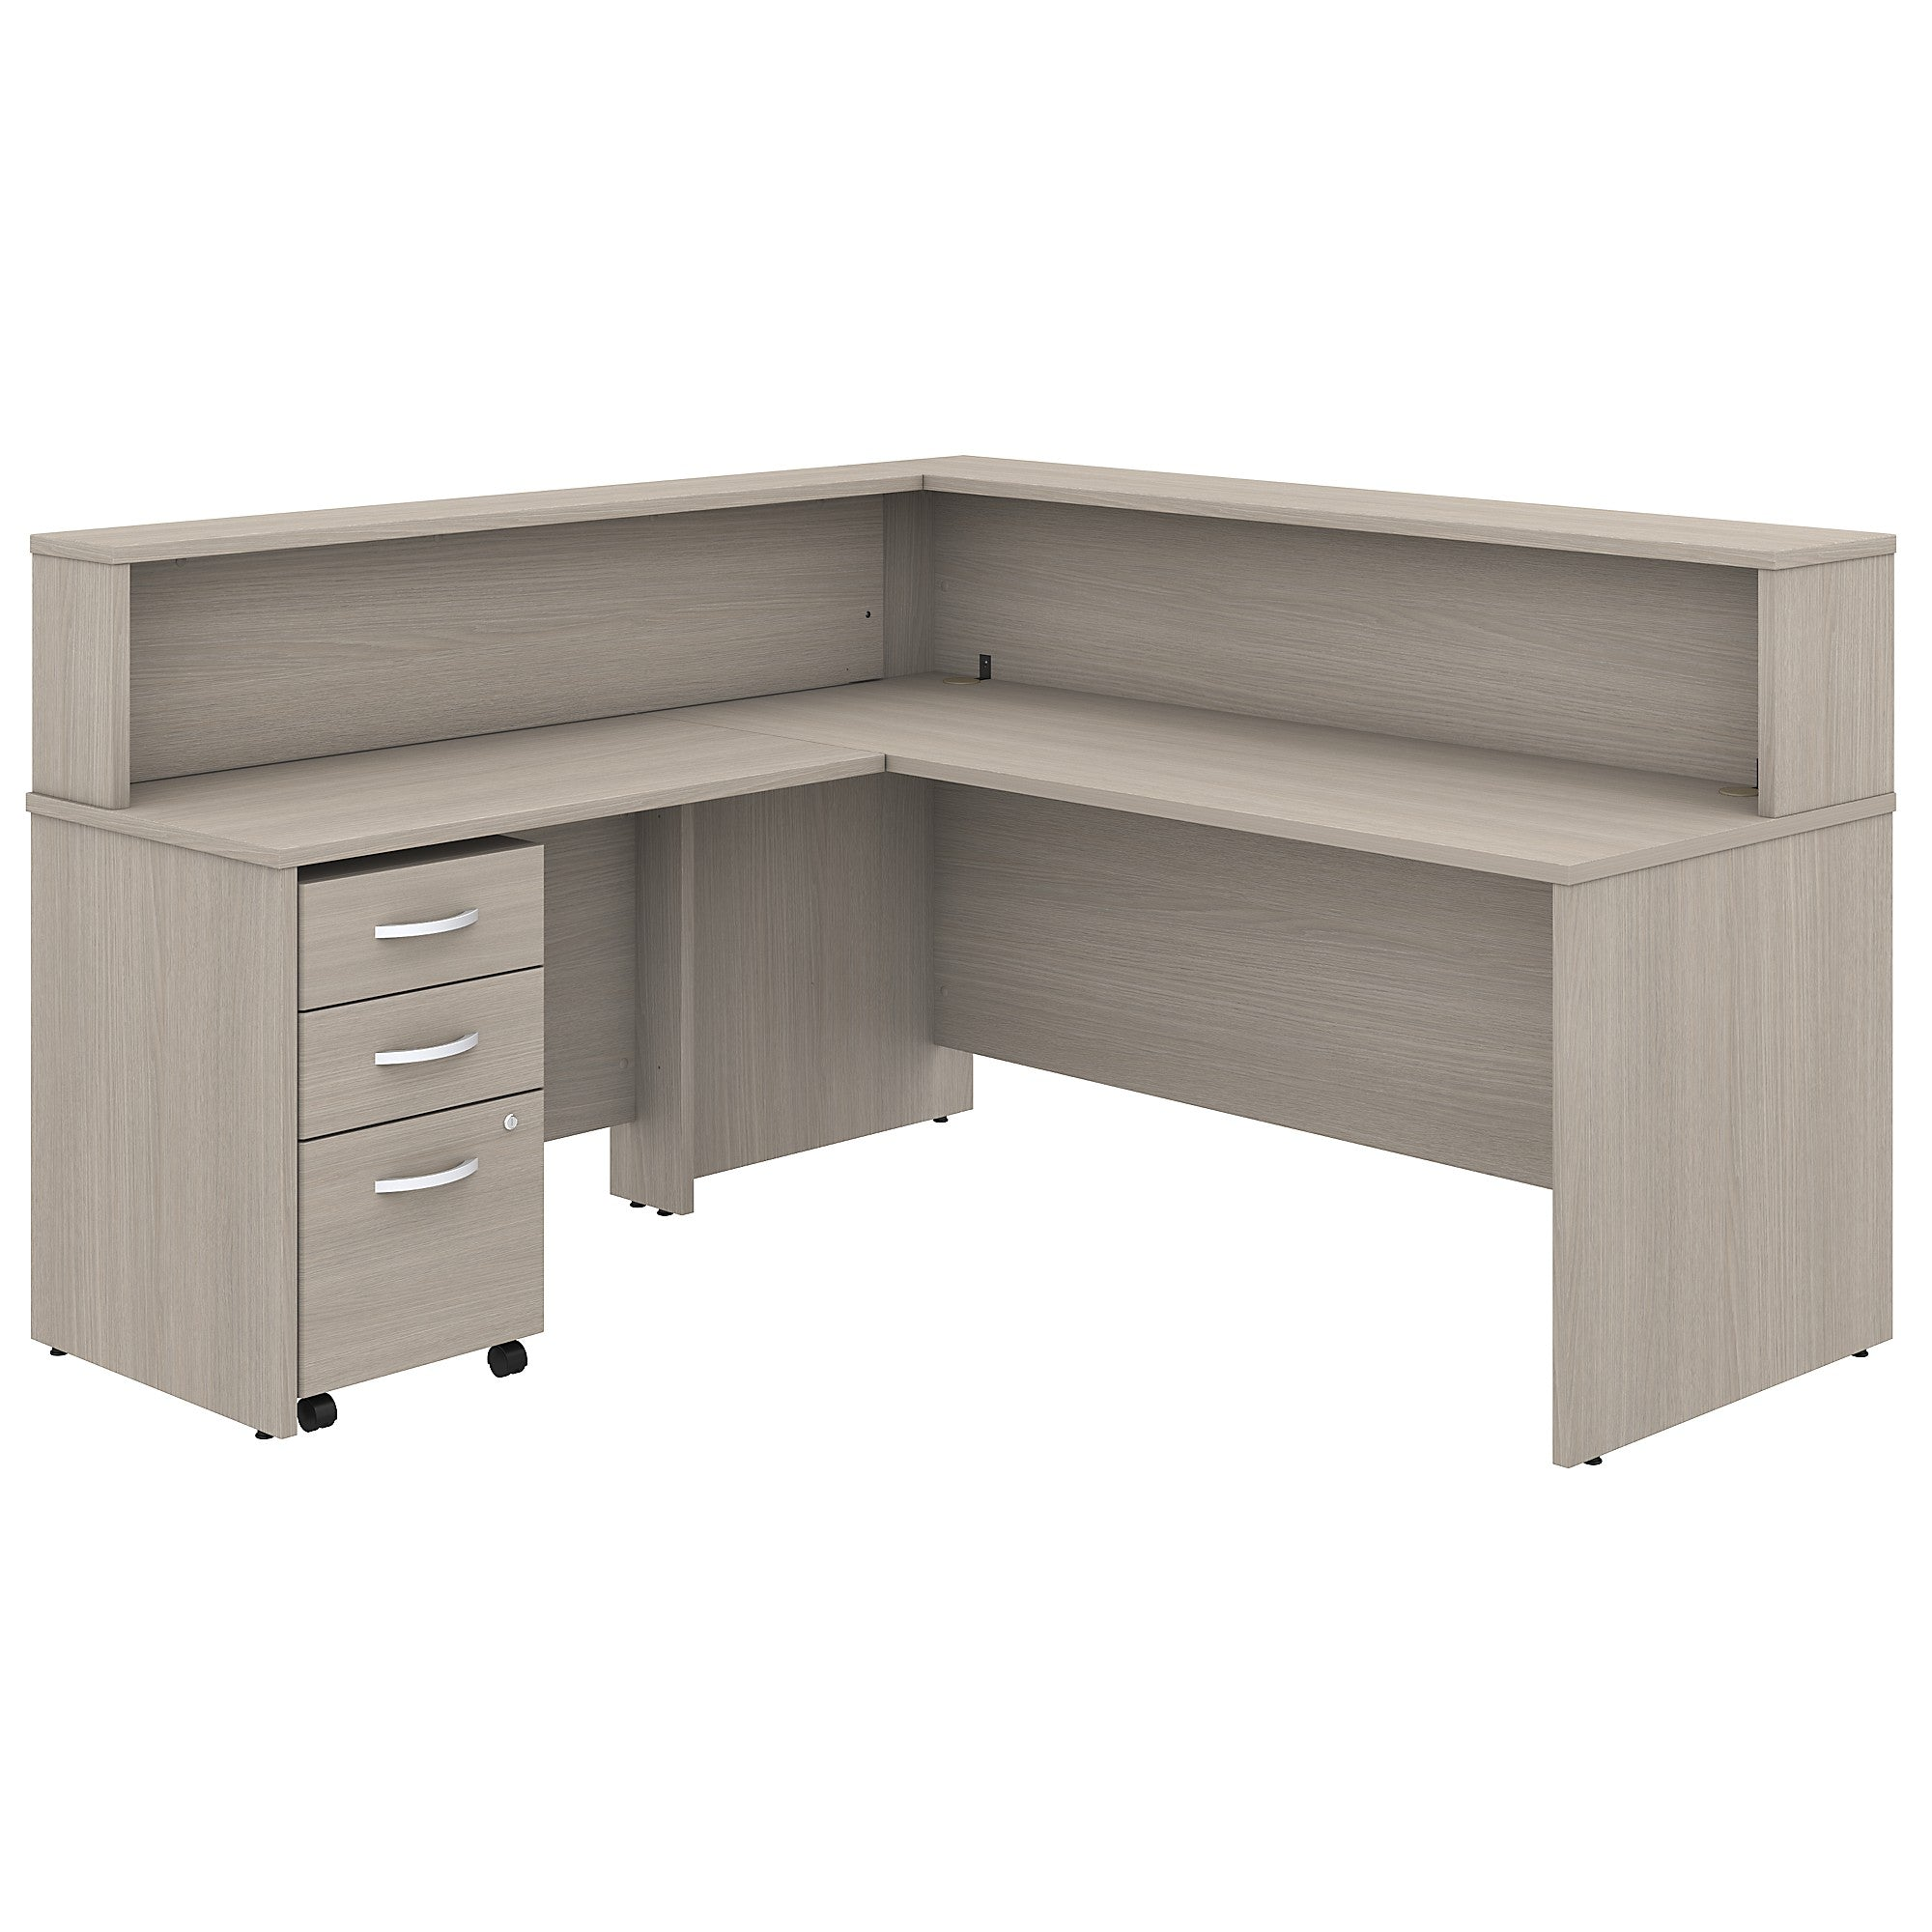 Studio C 72W L Shaped Reception Desk with Shelf & Mobile File Cabinet